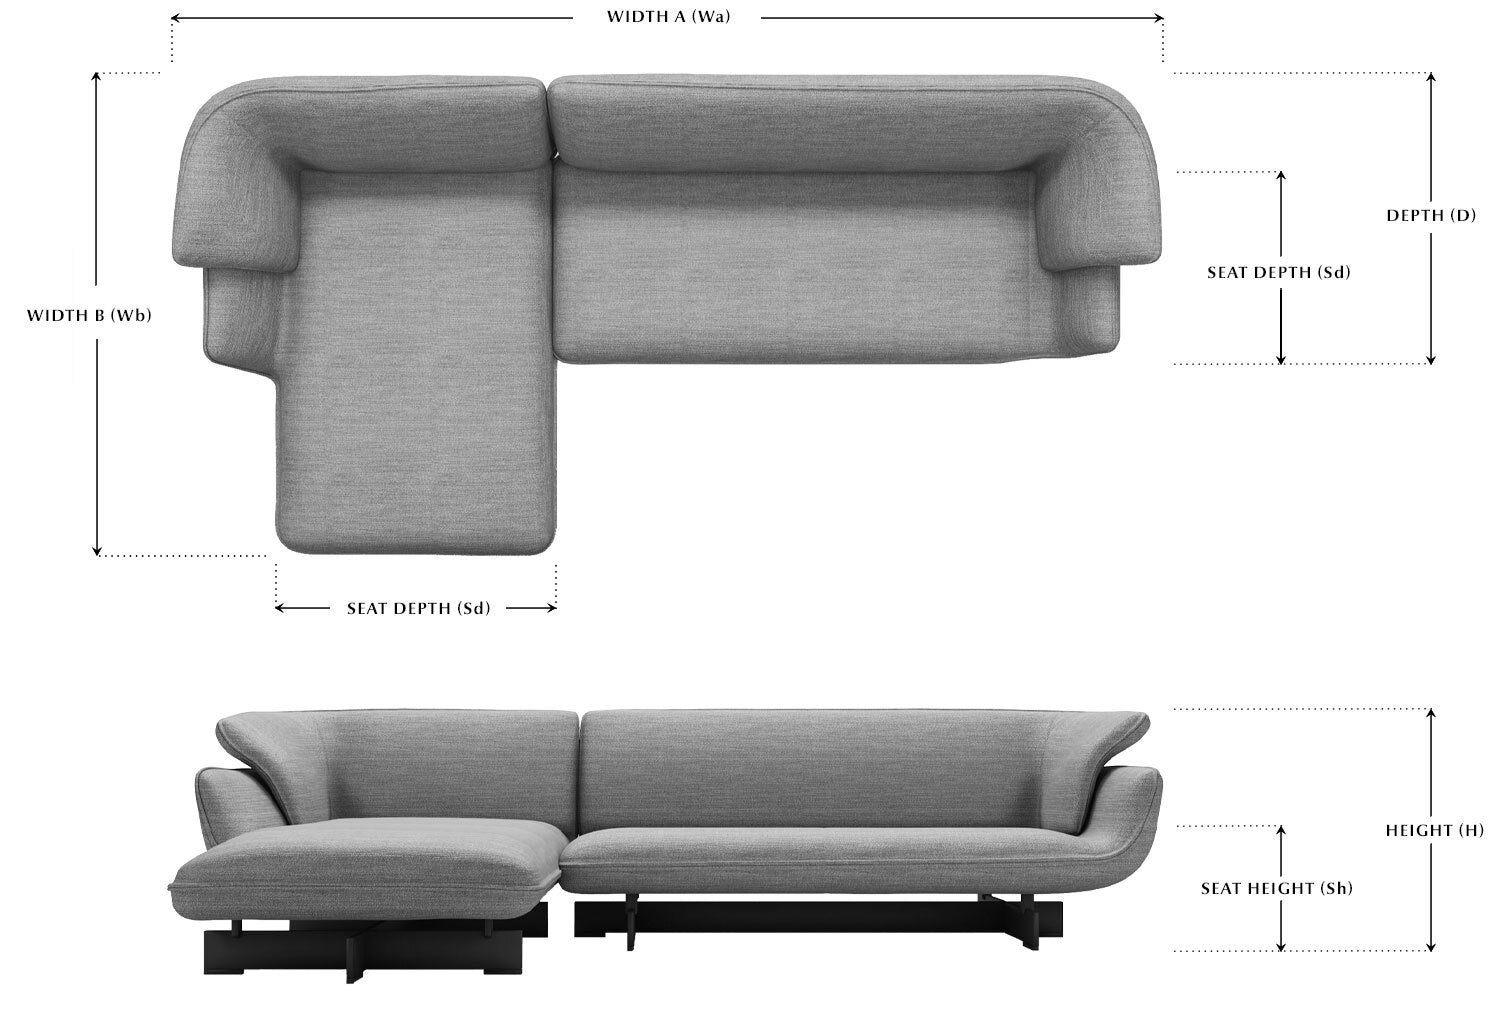 Sofa dimension -  One Off Edition measurement guide